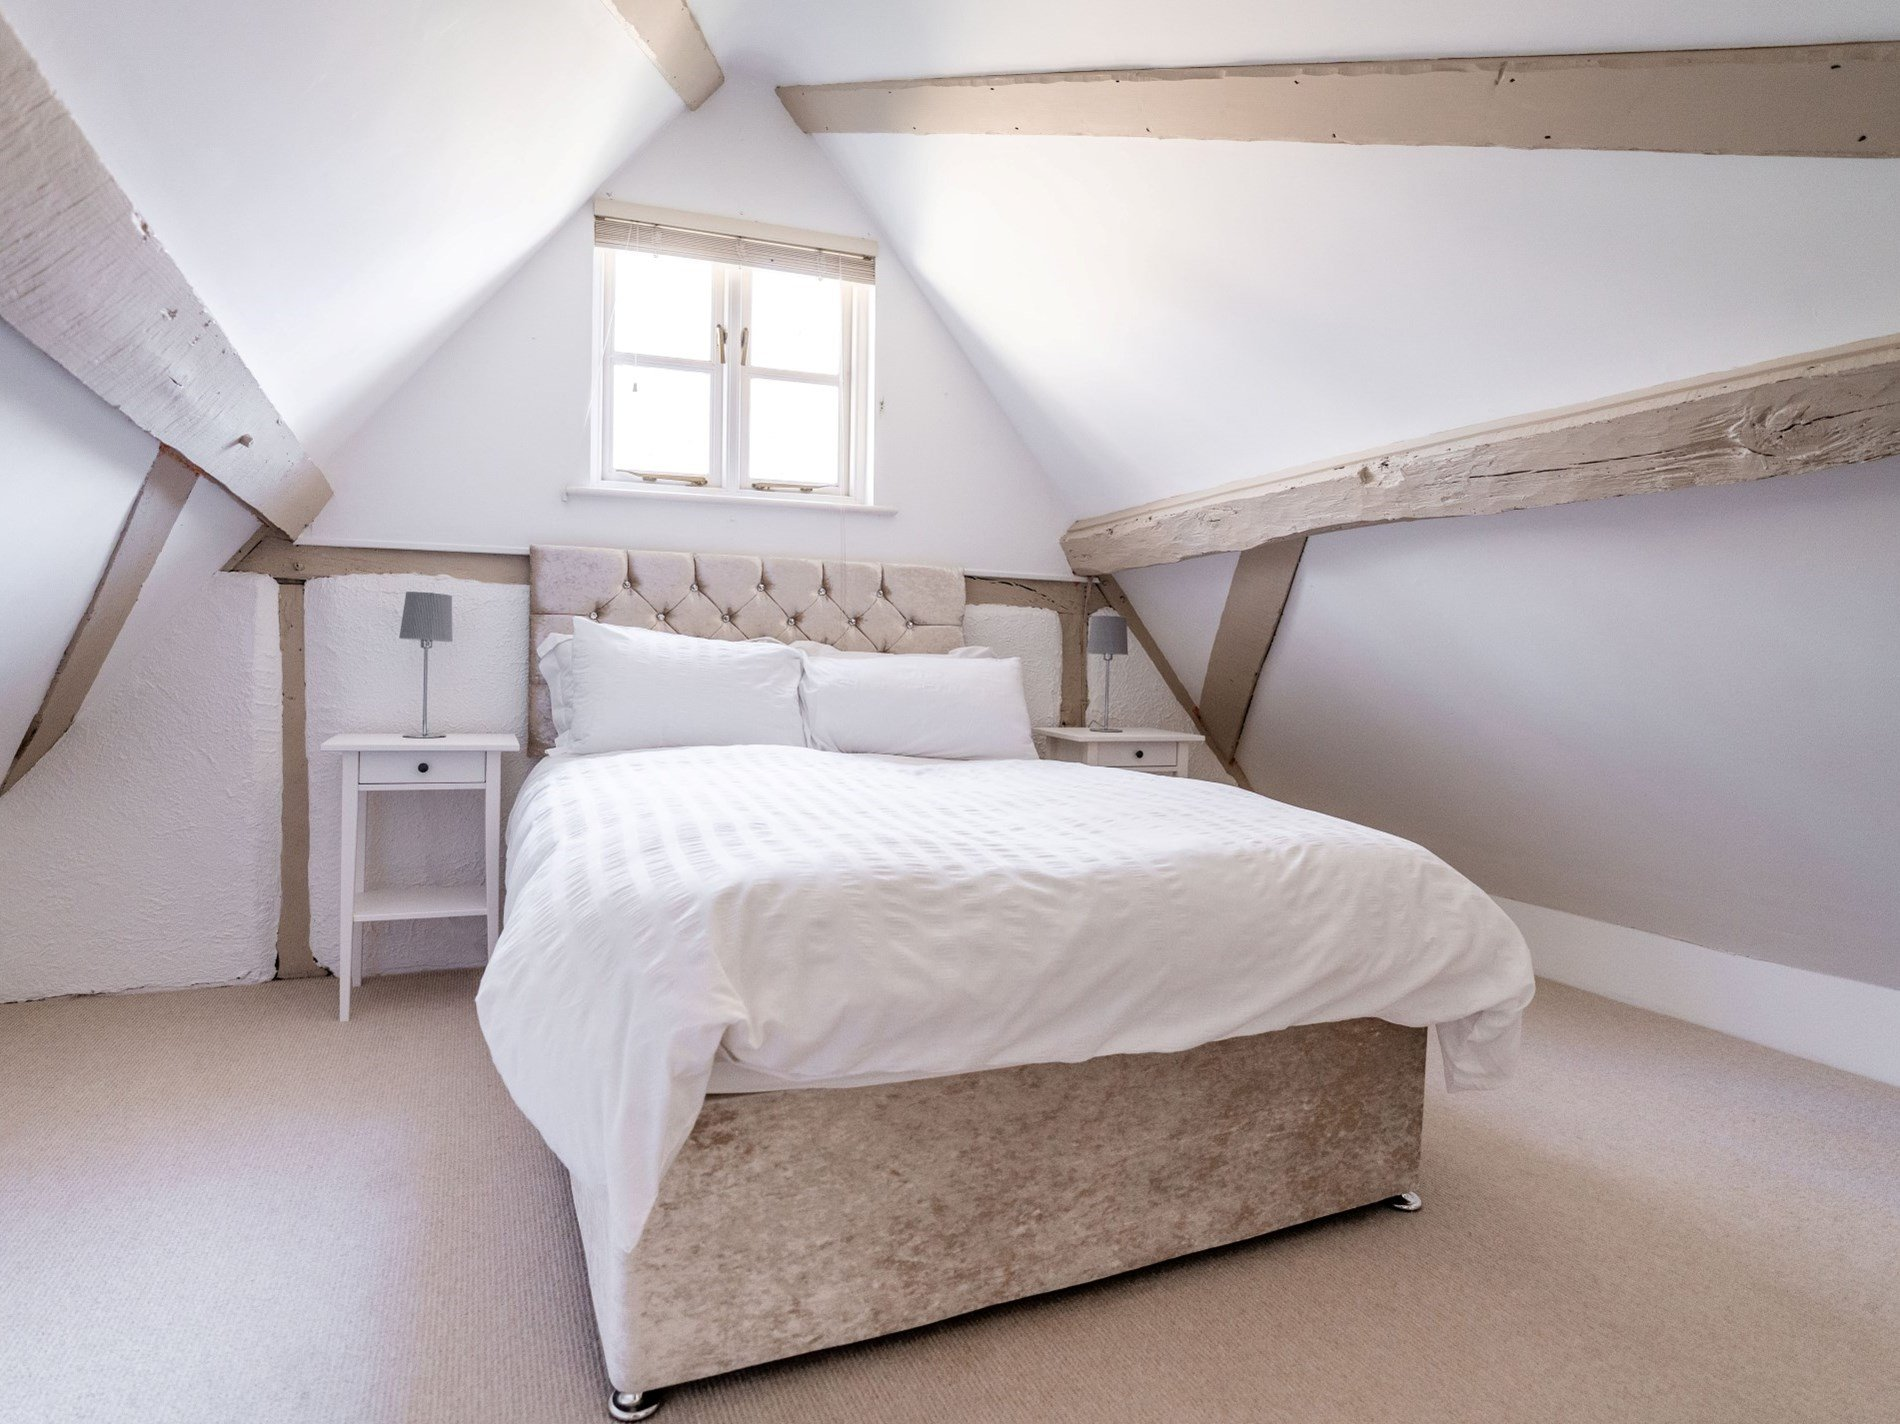 Double bedroom set in the eaves